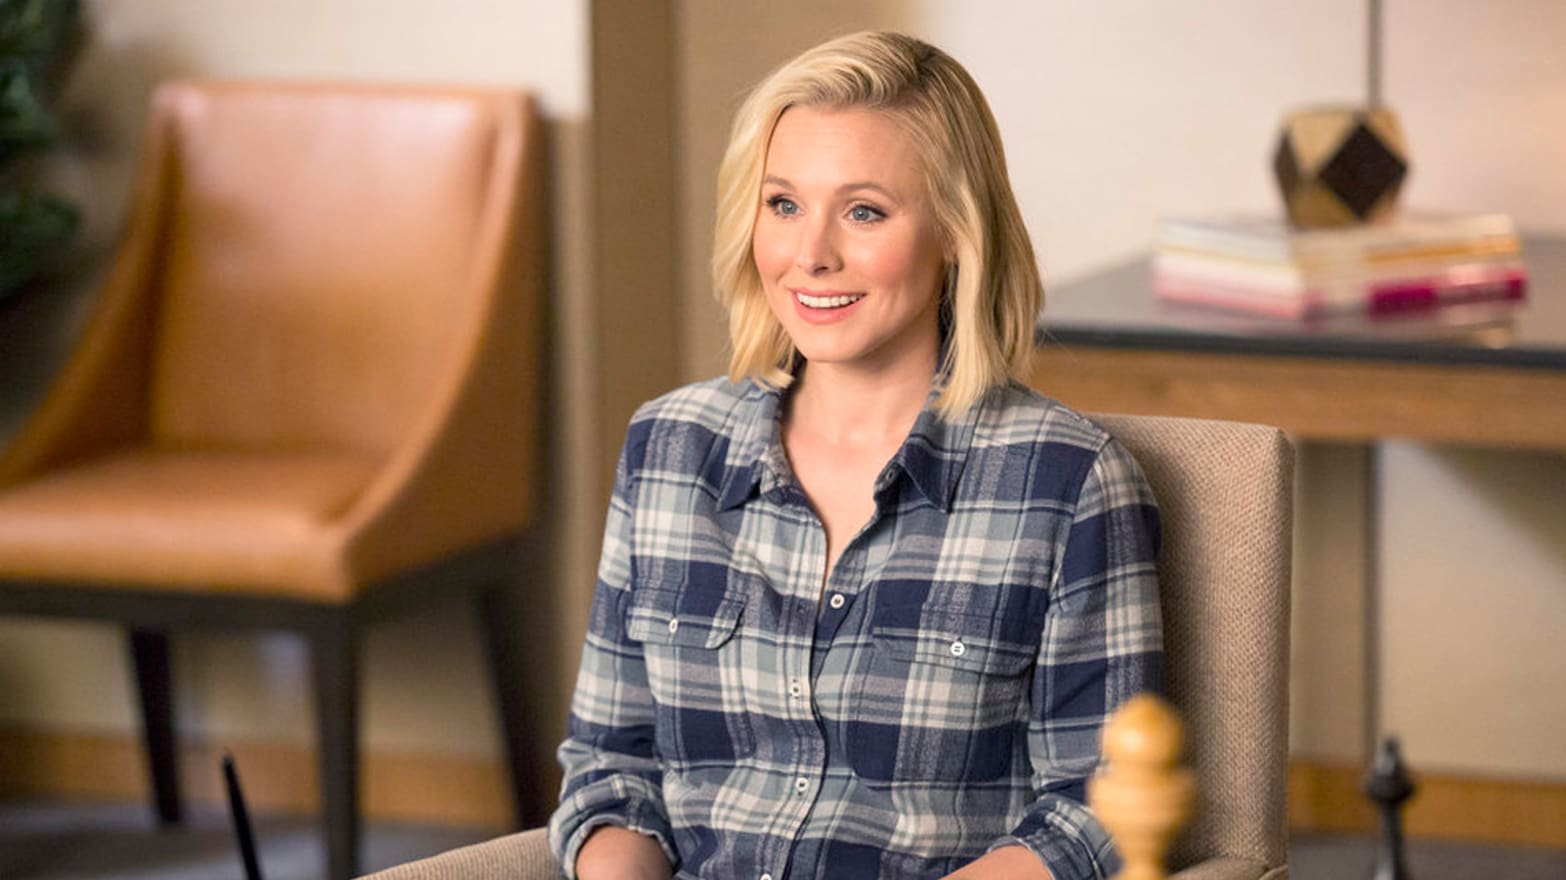 a9858c41c7f8df How Kristen Bell Found Her 'Good Place': Motherhood, a Brand New Show, and  Balance